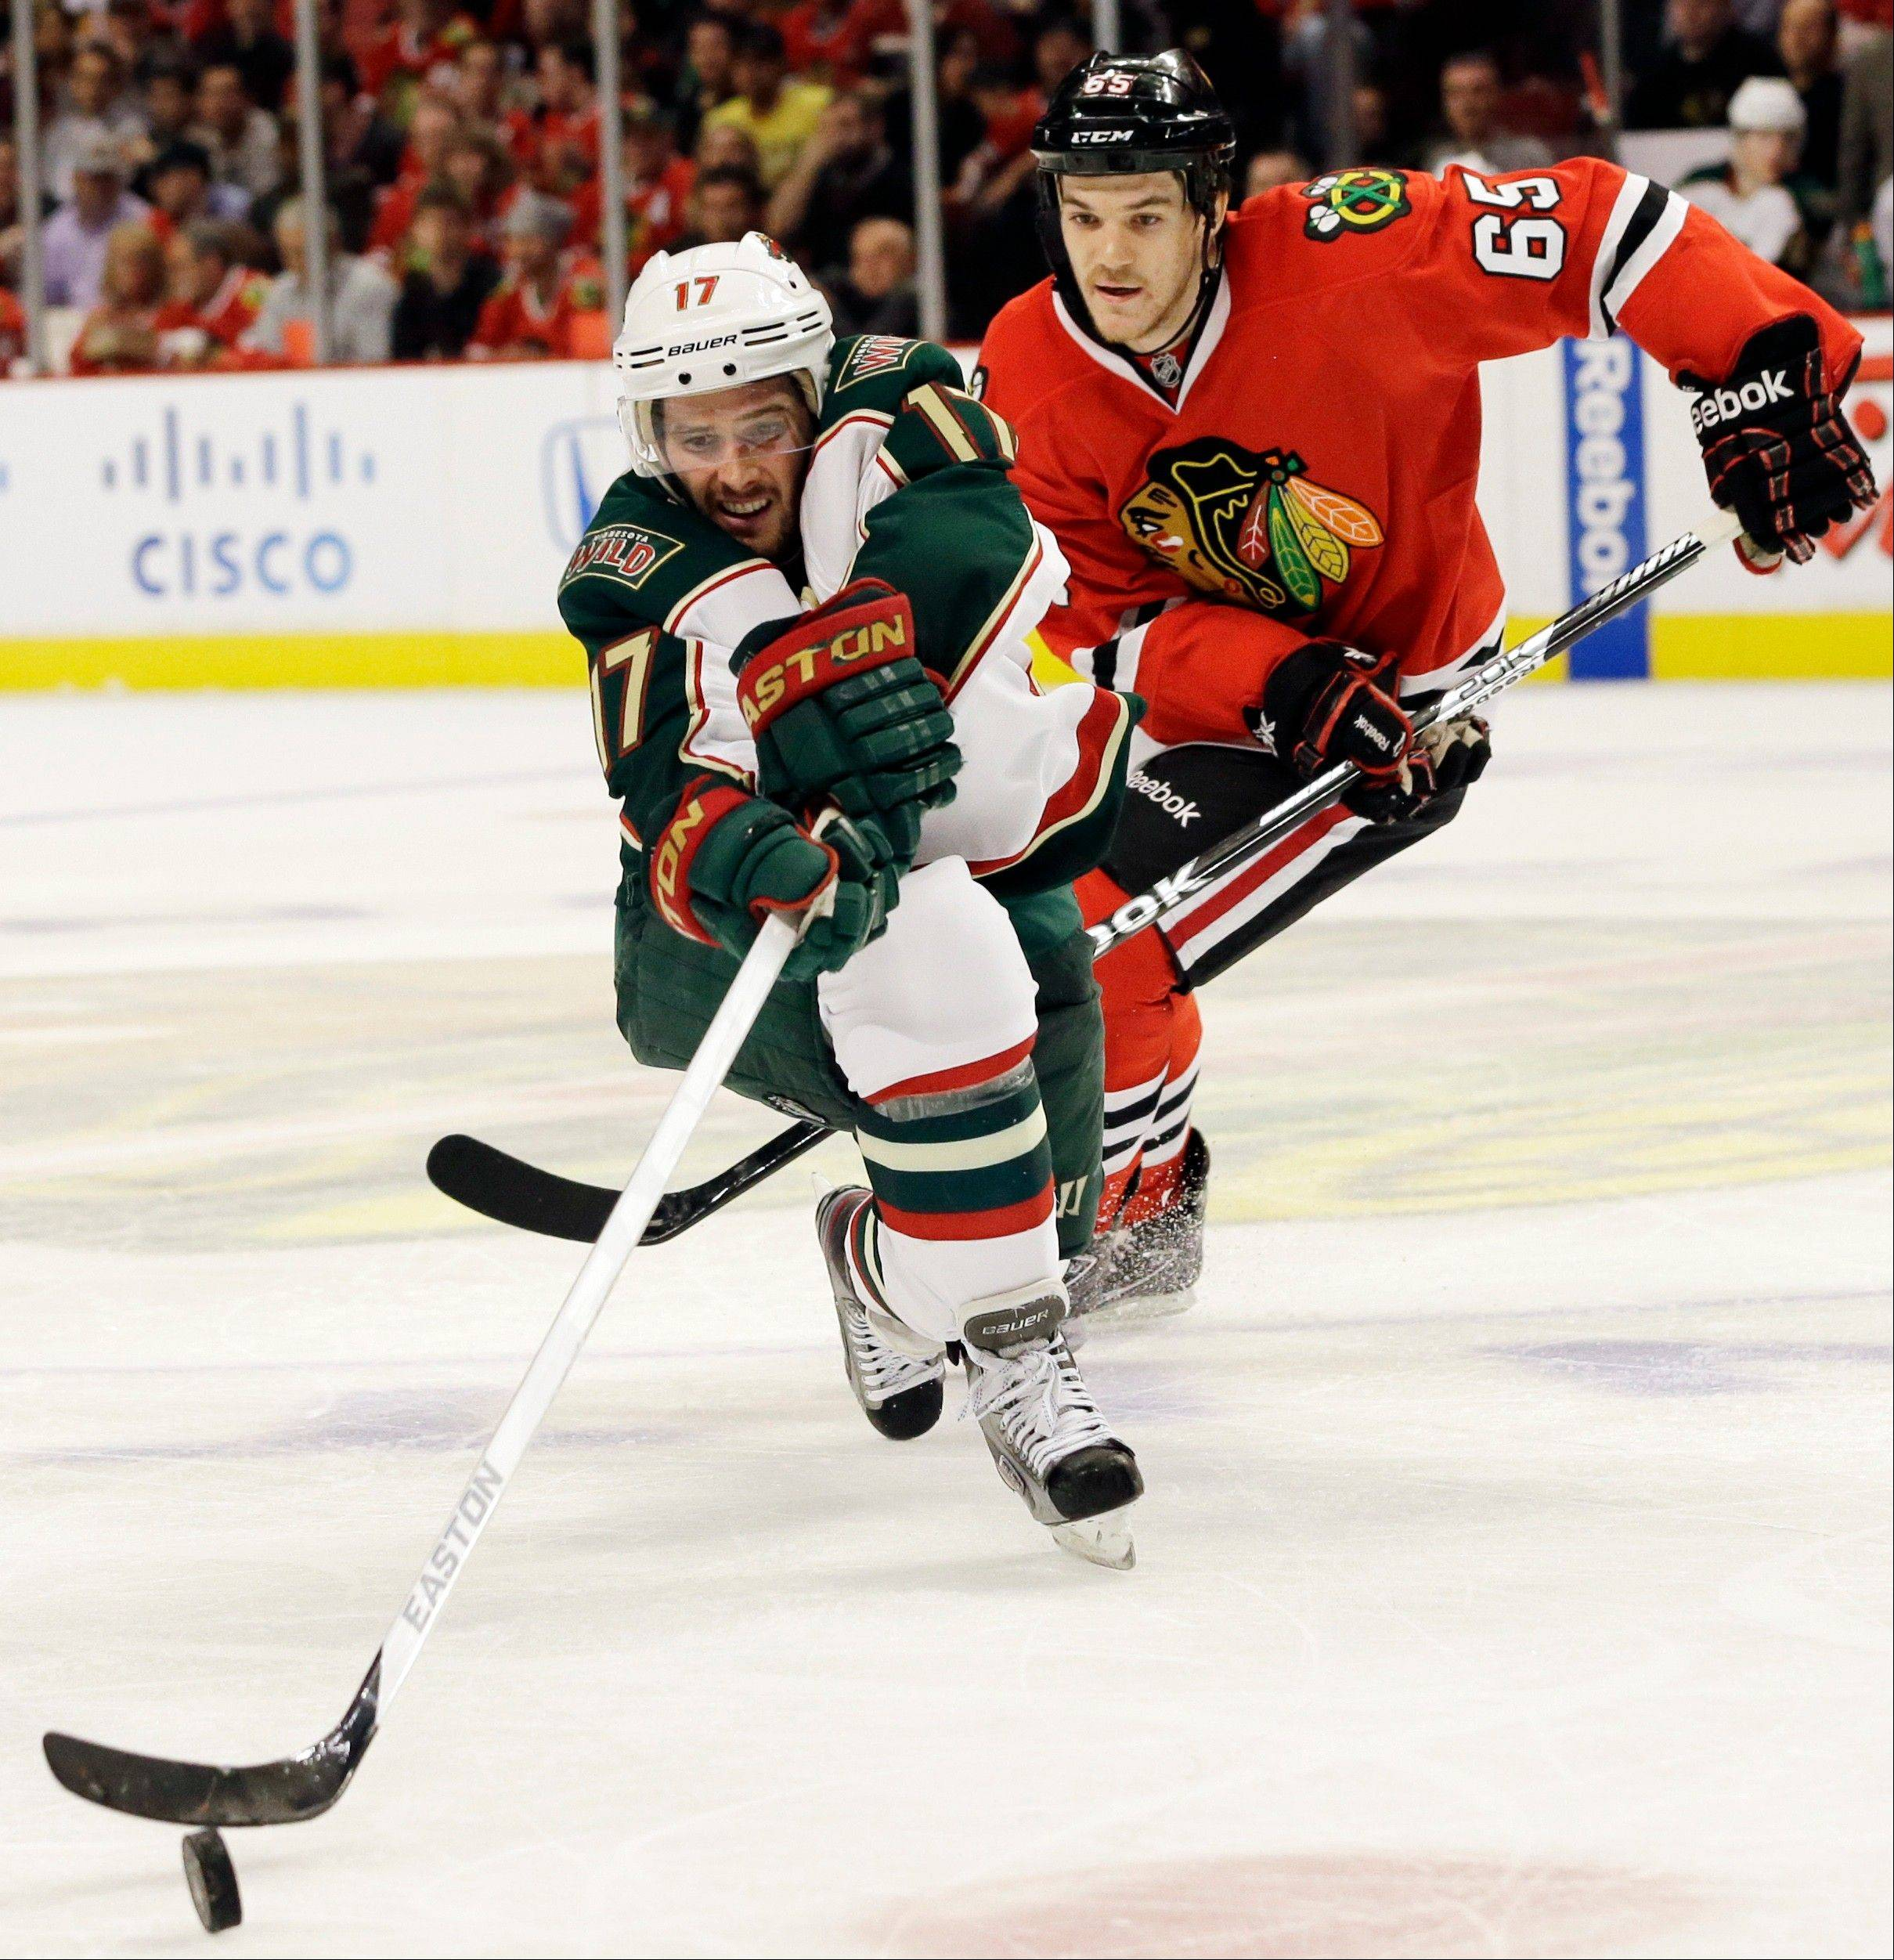 Minnesota Wild's Torrey Mitchell (17) controls the puck against Chicago Blackhawks' Andrew Shaw (65) during the second period of Game 5 of an NHL hockey Stanley Cup first-round playoff series in Chicago, Thursday, May 9, 2013.